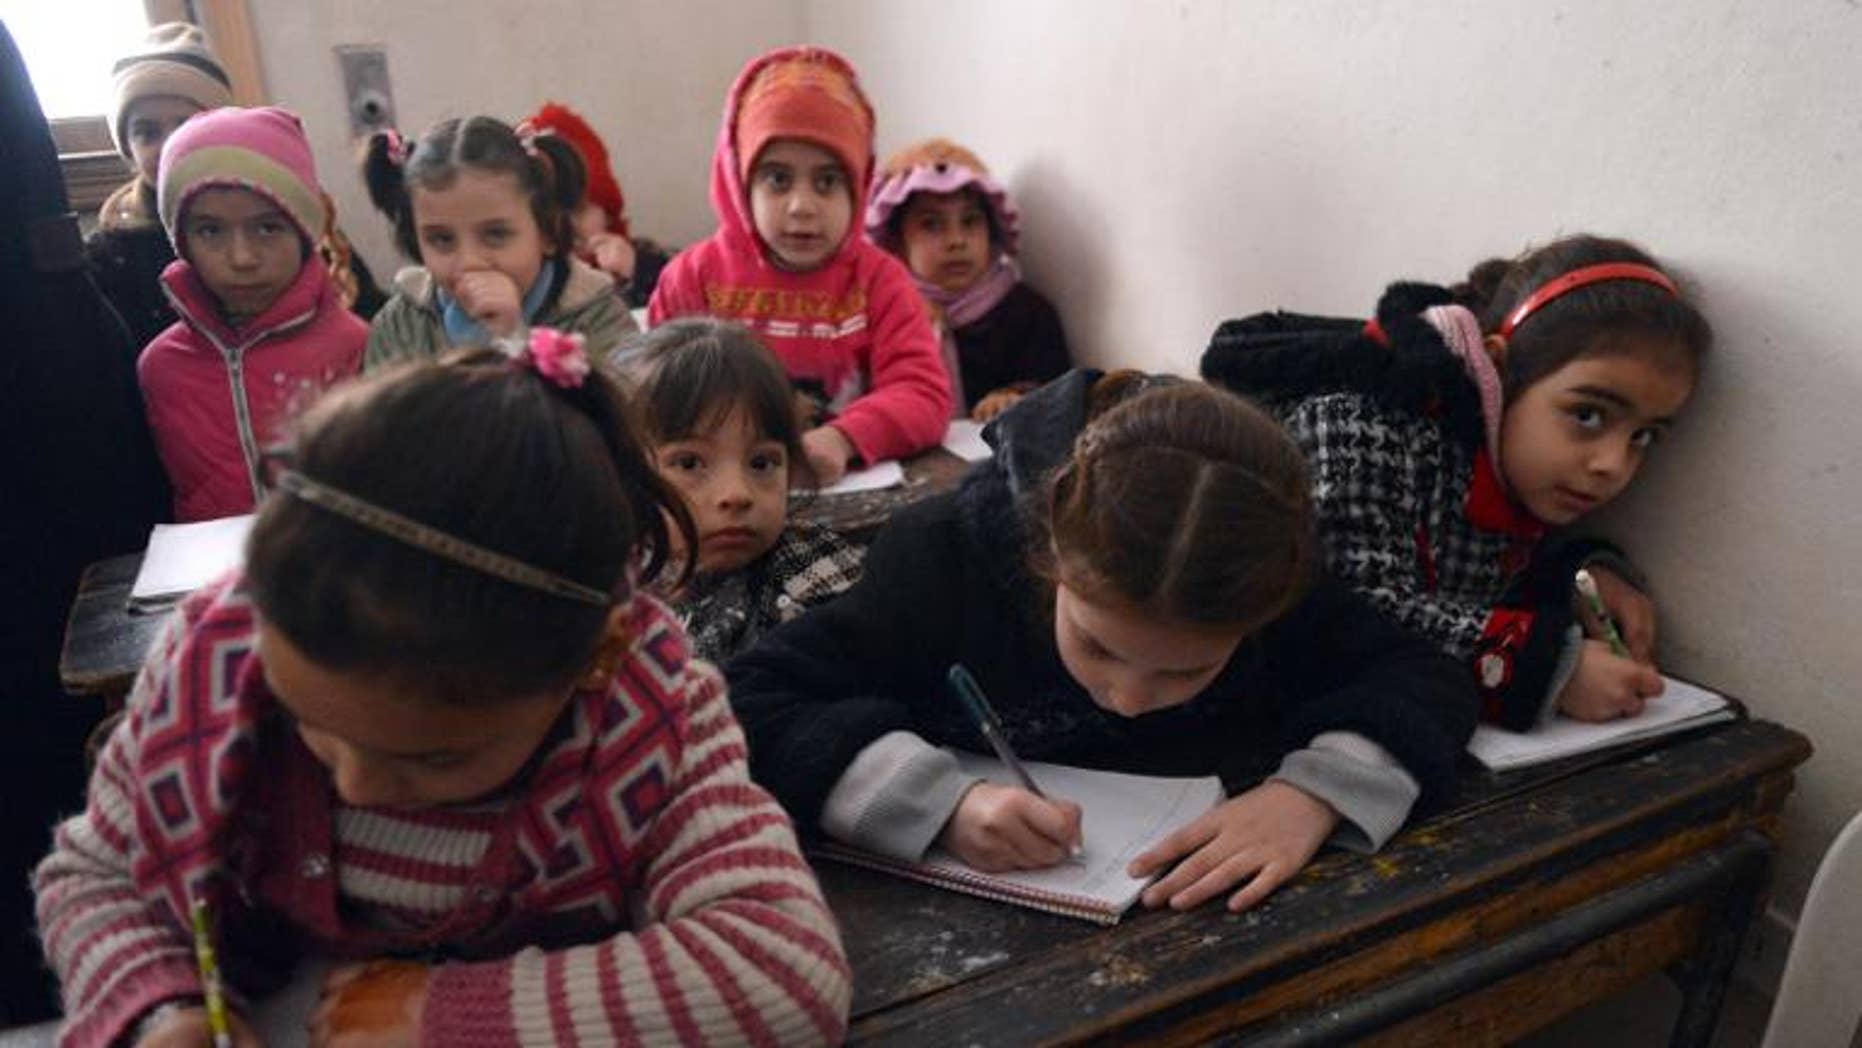 Syrian children attend a class at a school in the Kadi Askar area in the Syria's northern city of Aleppo on February 9, 2013.